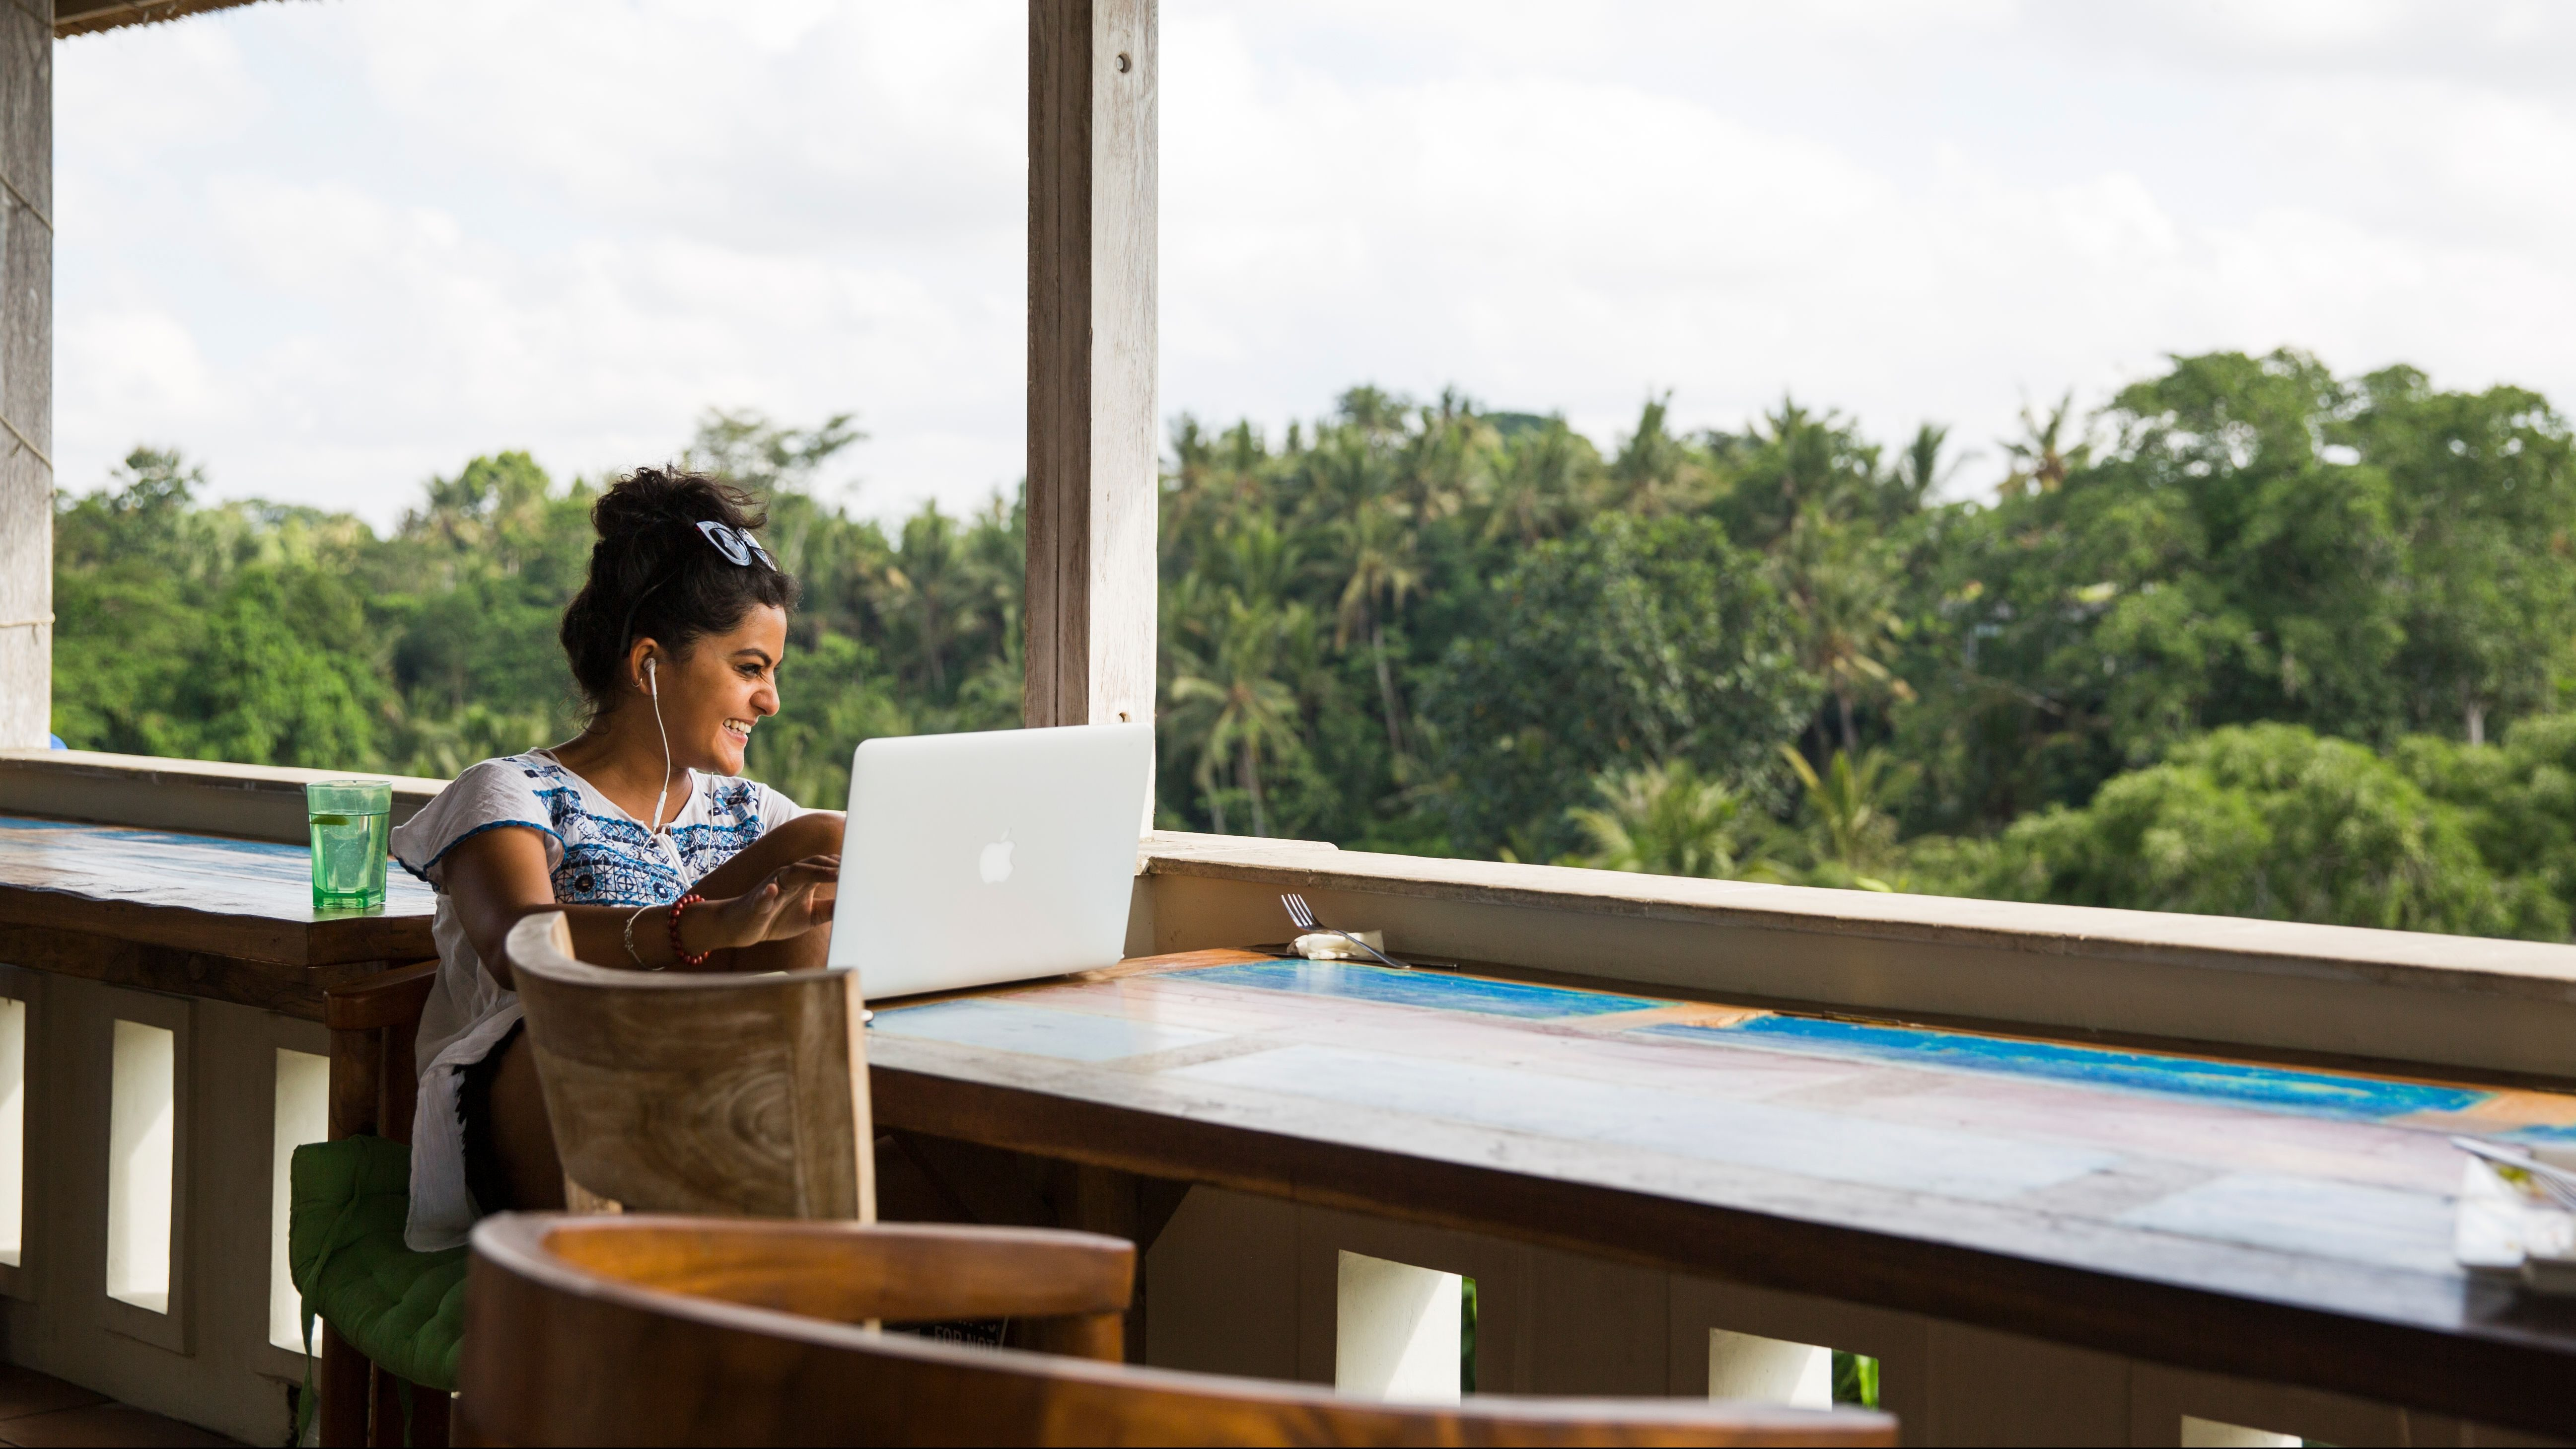 A new kind of tourism: co-working trips abroad